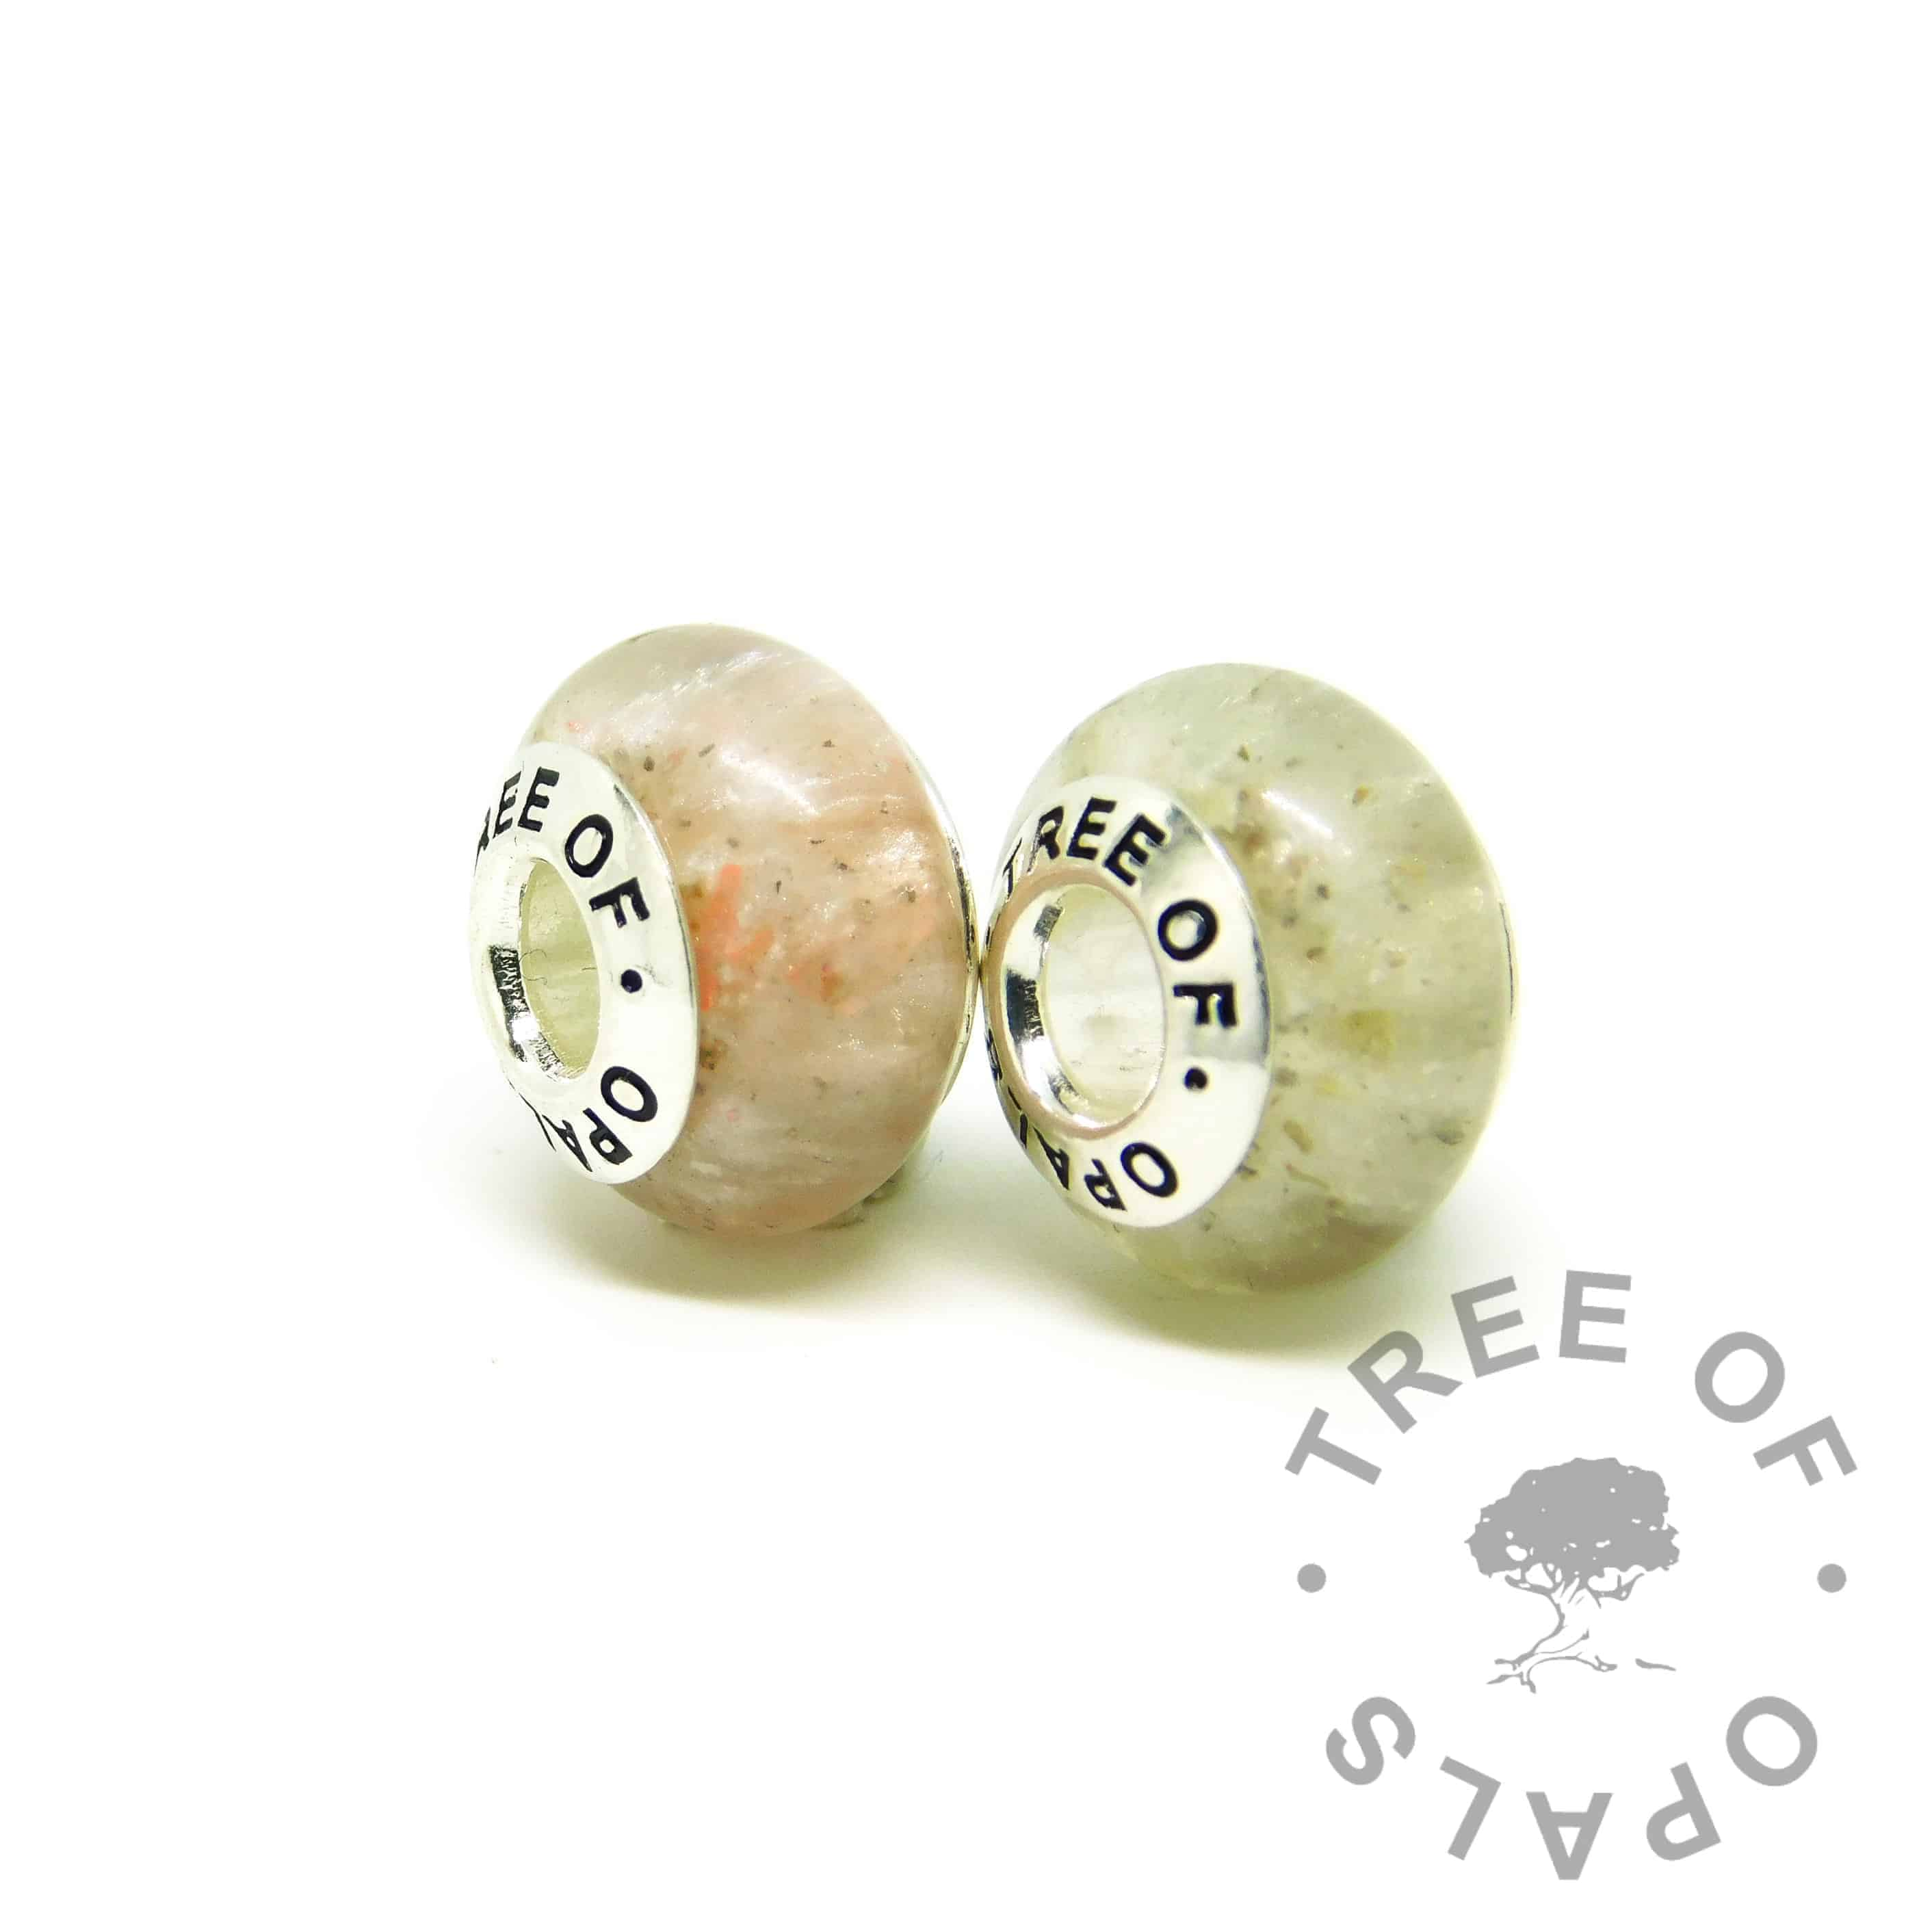 ashes jewellery charms - set of two resin charm beads in pink and classic ashes